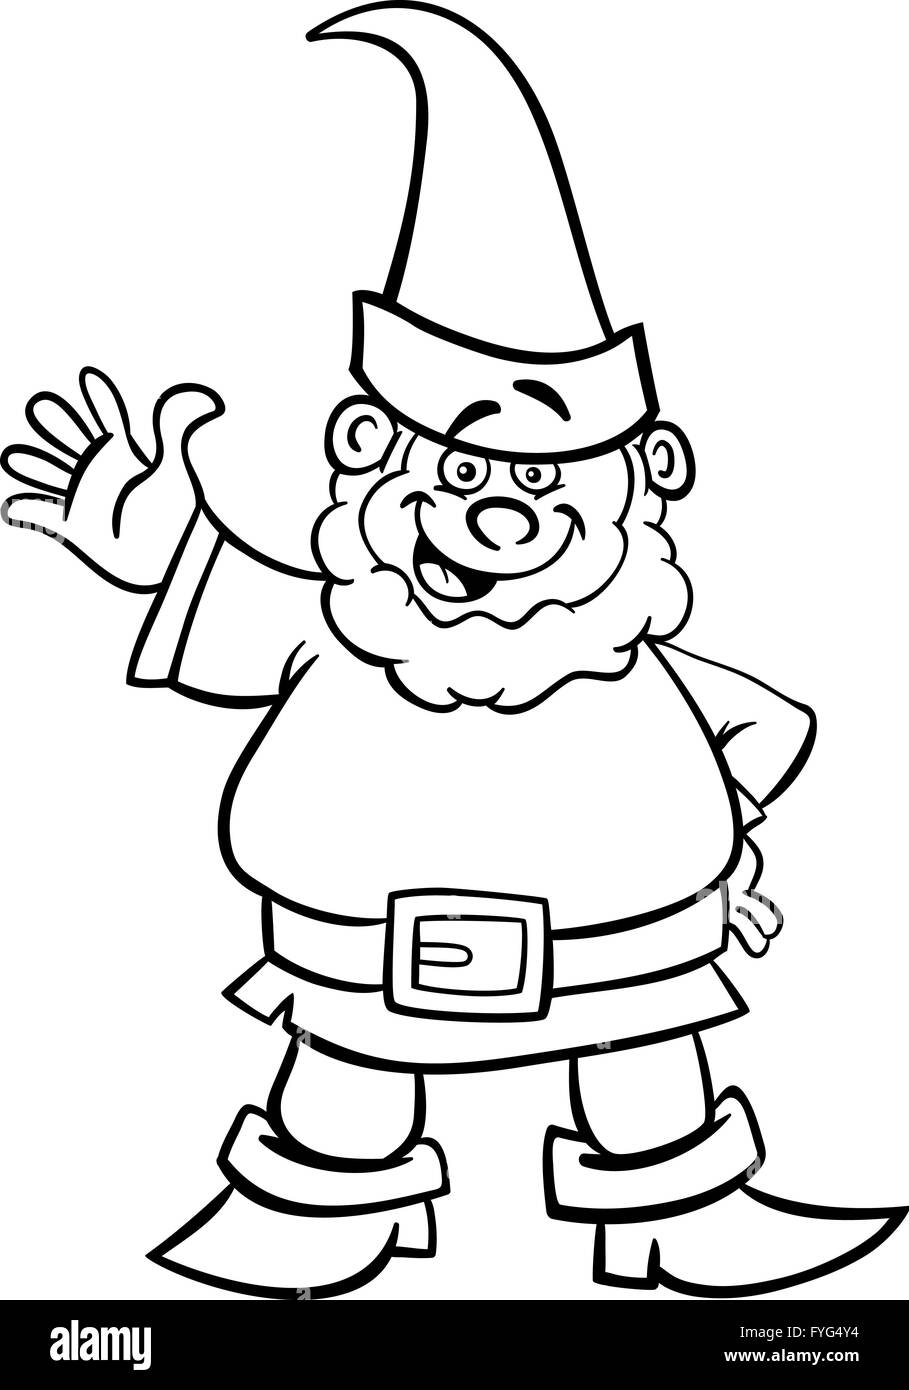 gnome or dwarf cartoon for coloring book stock photo royalty free